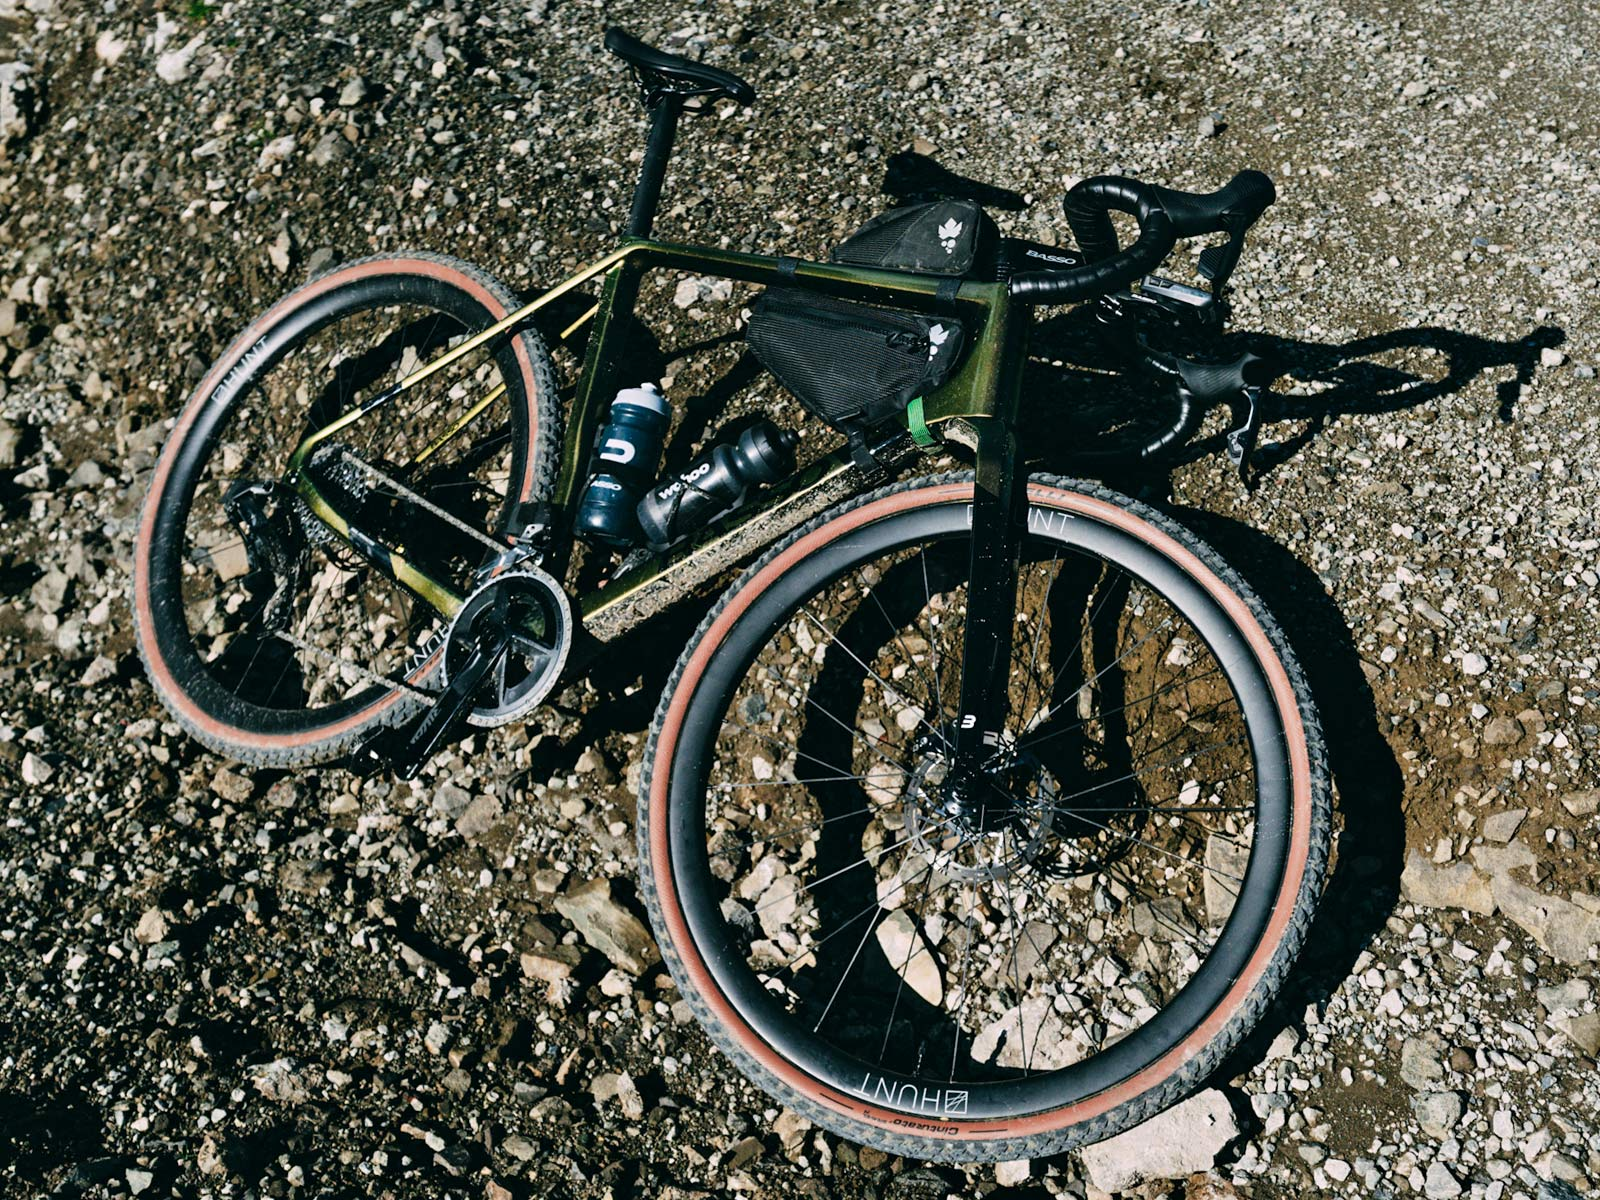 Review: Fast new 2022 Basso Palta II carbon gravel bike review made-in-Italy, photo byFrancesco Bonato, complete